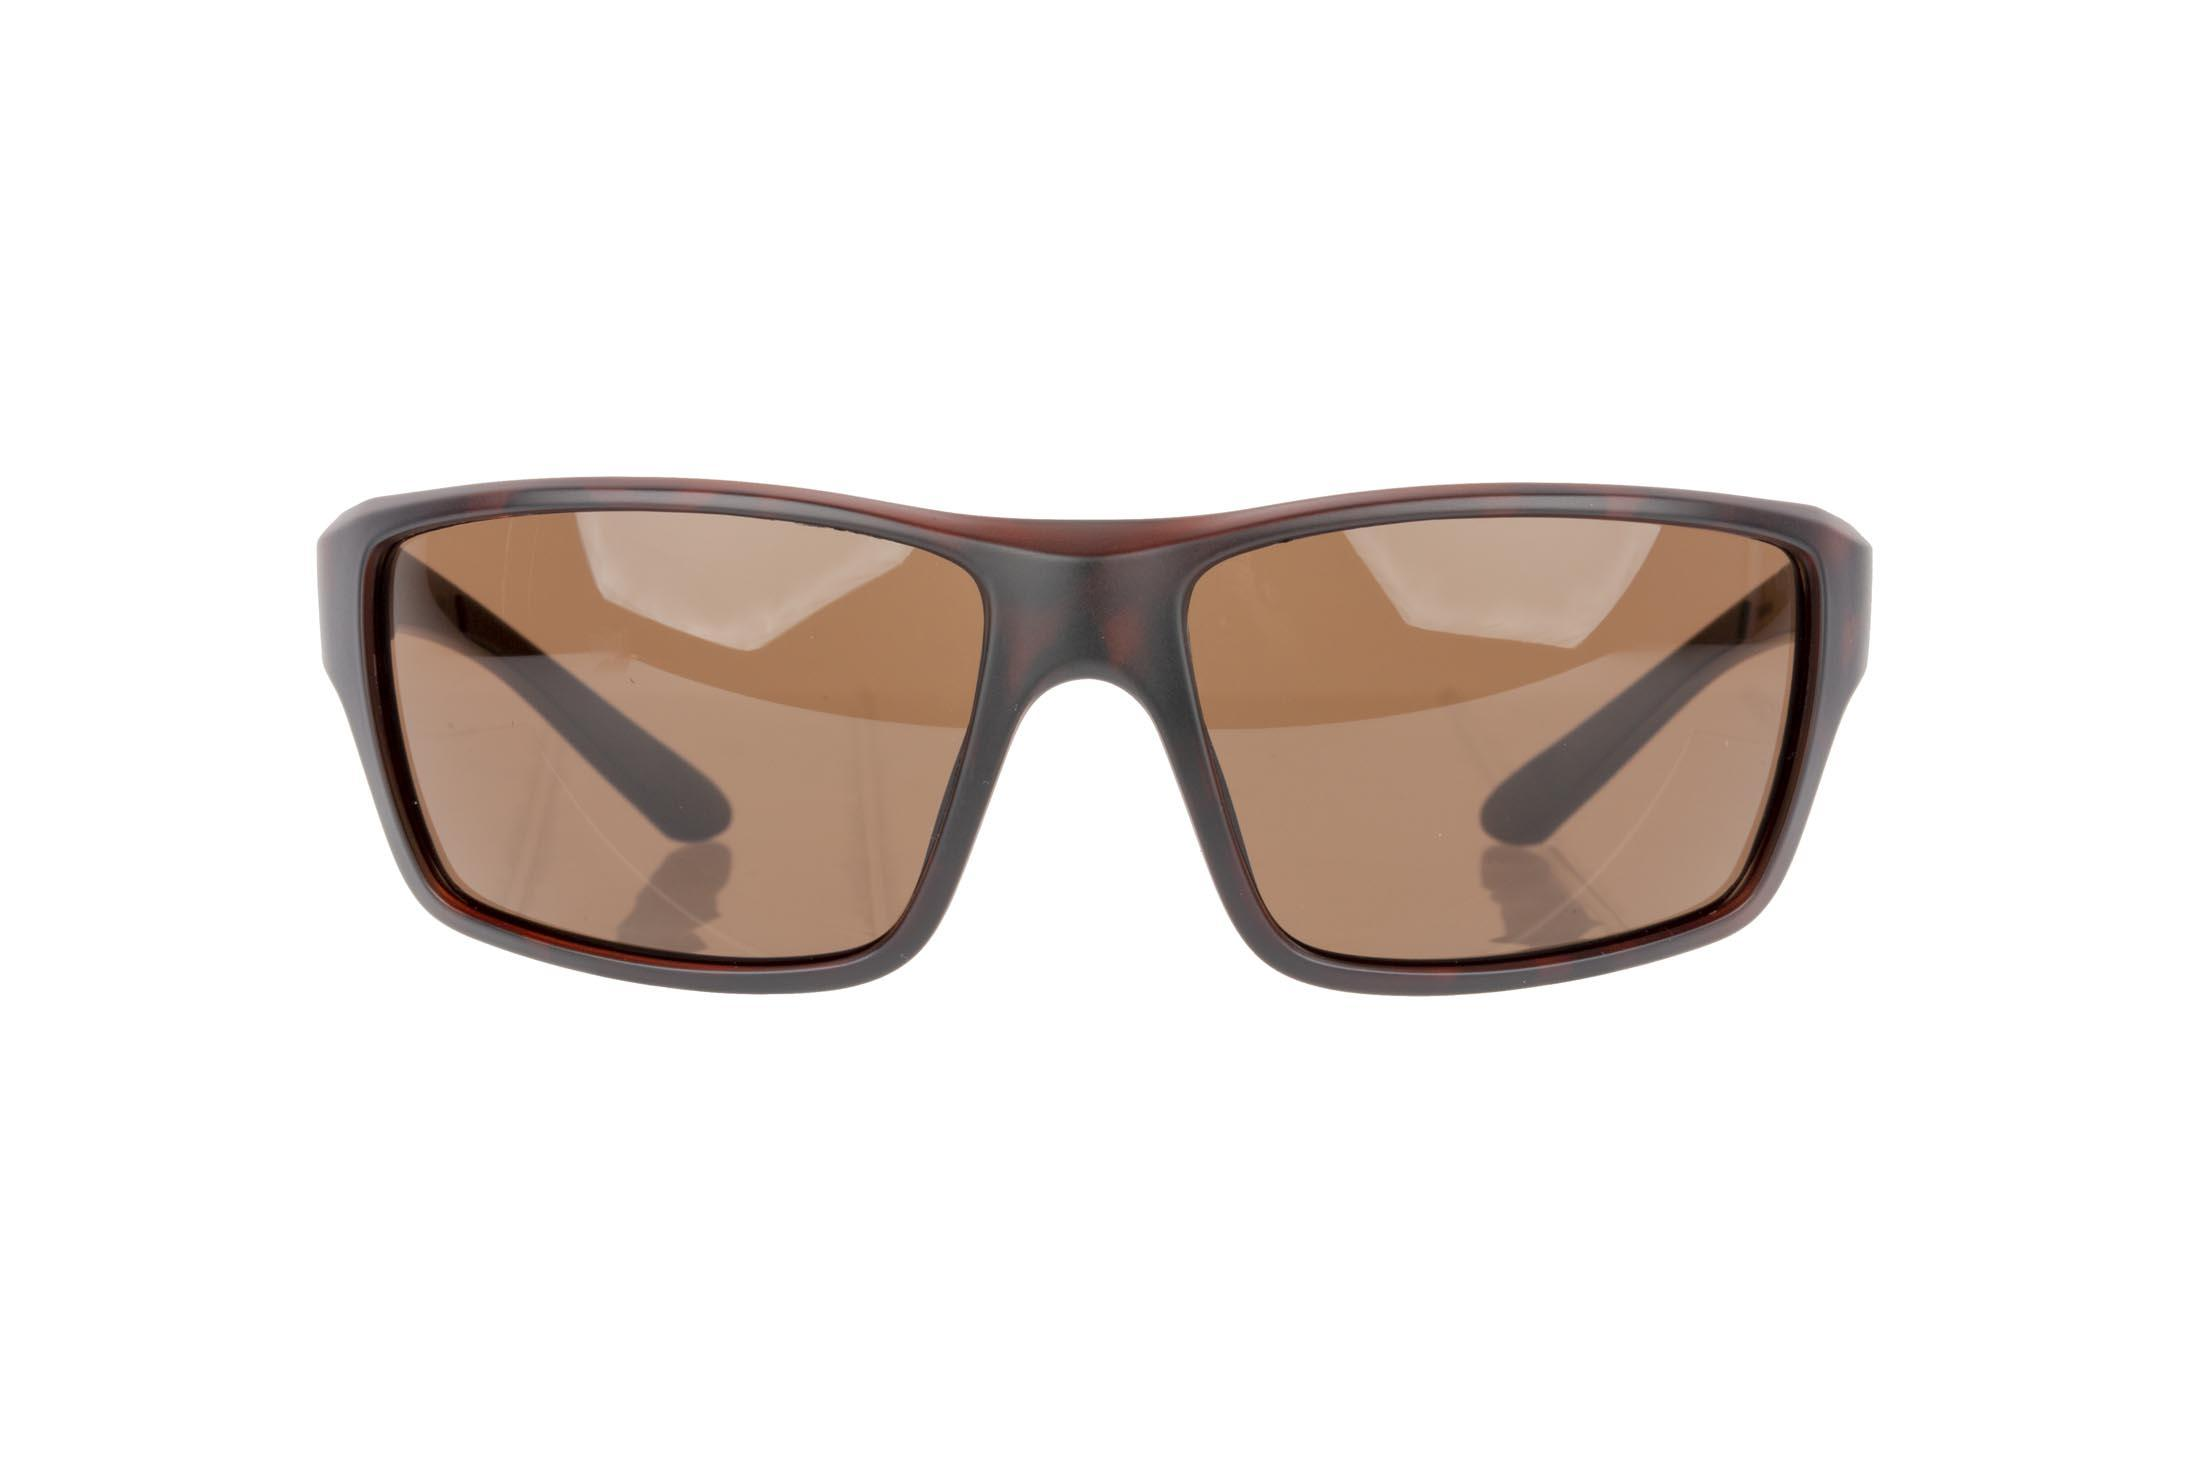 Magpul Summit safety glasses gray frame and Bronze polarized lenses are made from TR90ZZ theromplastic for exceptional durability